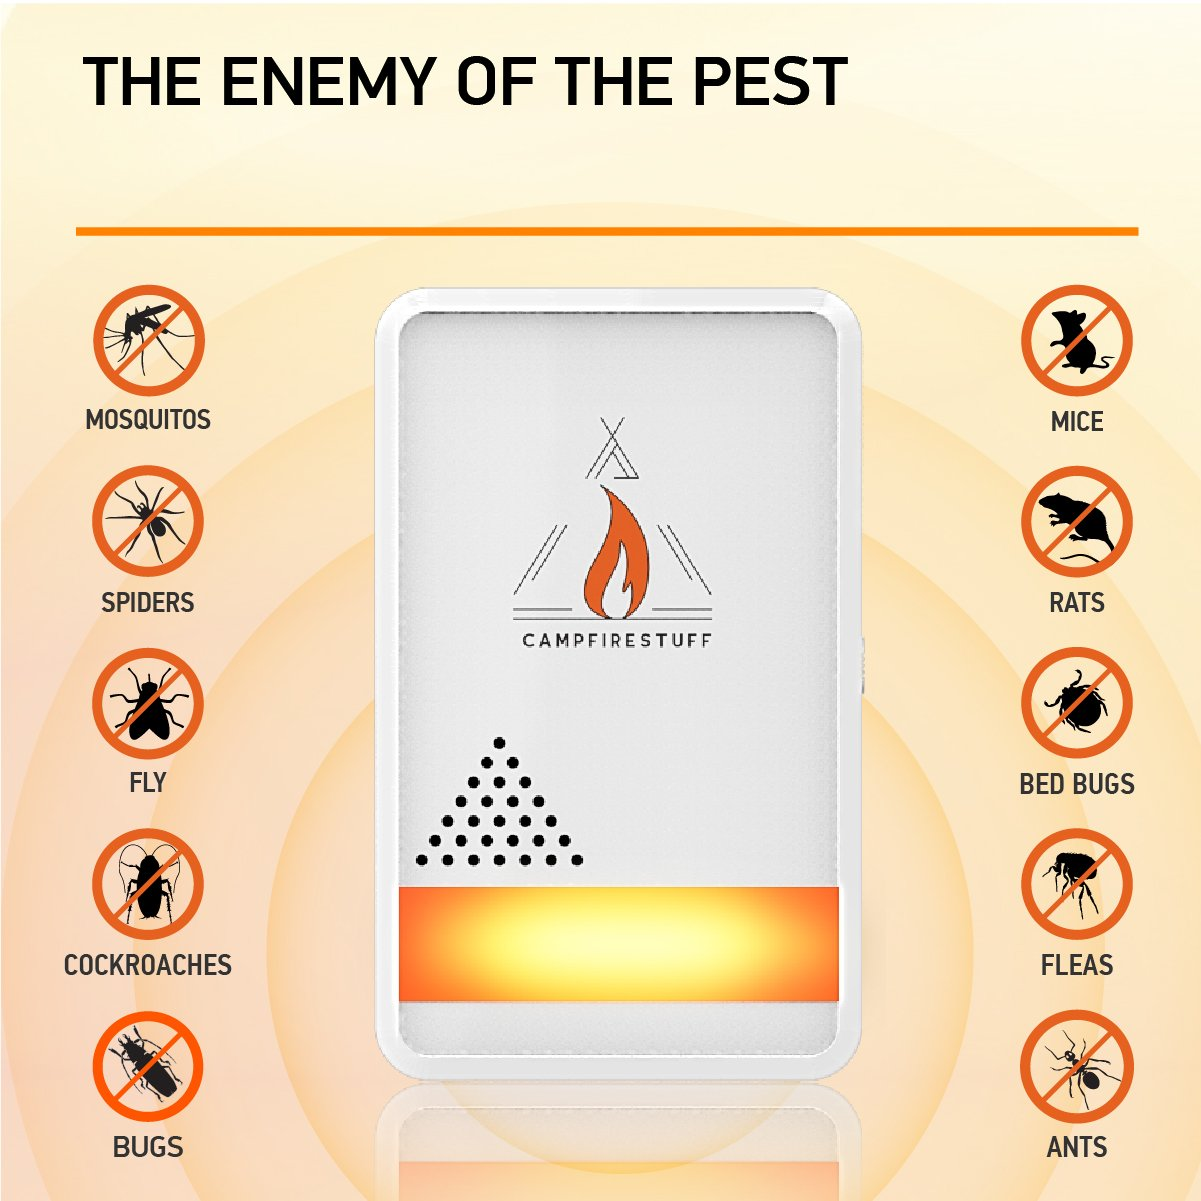 Campfire Stuff New 4 Pack Ultrasonic Pest Repeller Mosquito Repellent Circuitbest Repellentindoor Electronic Ultrasound Indoor Plug In Anti Mice Insects Bugs Ants Mosquitos Rats Spiders Roaches